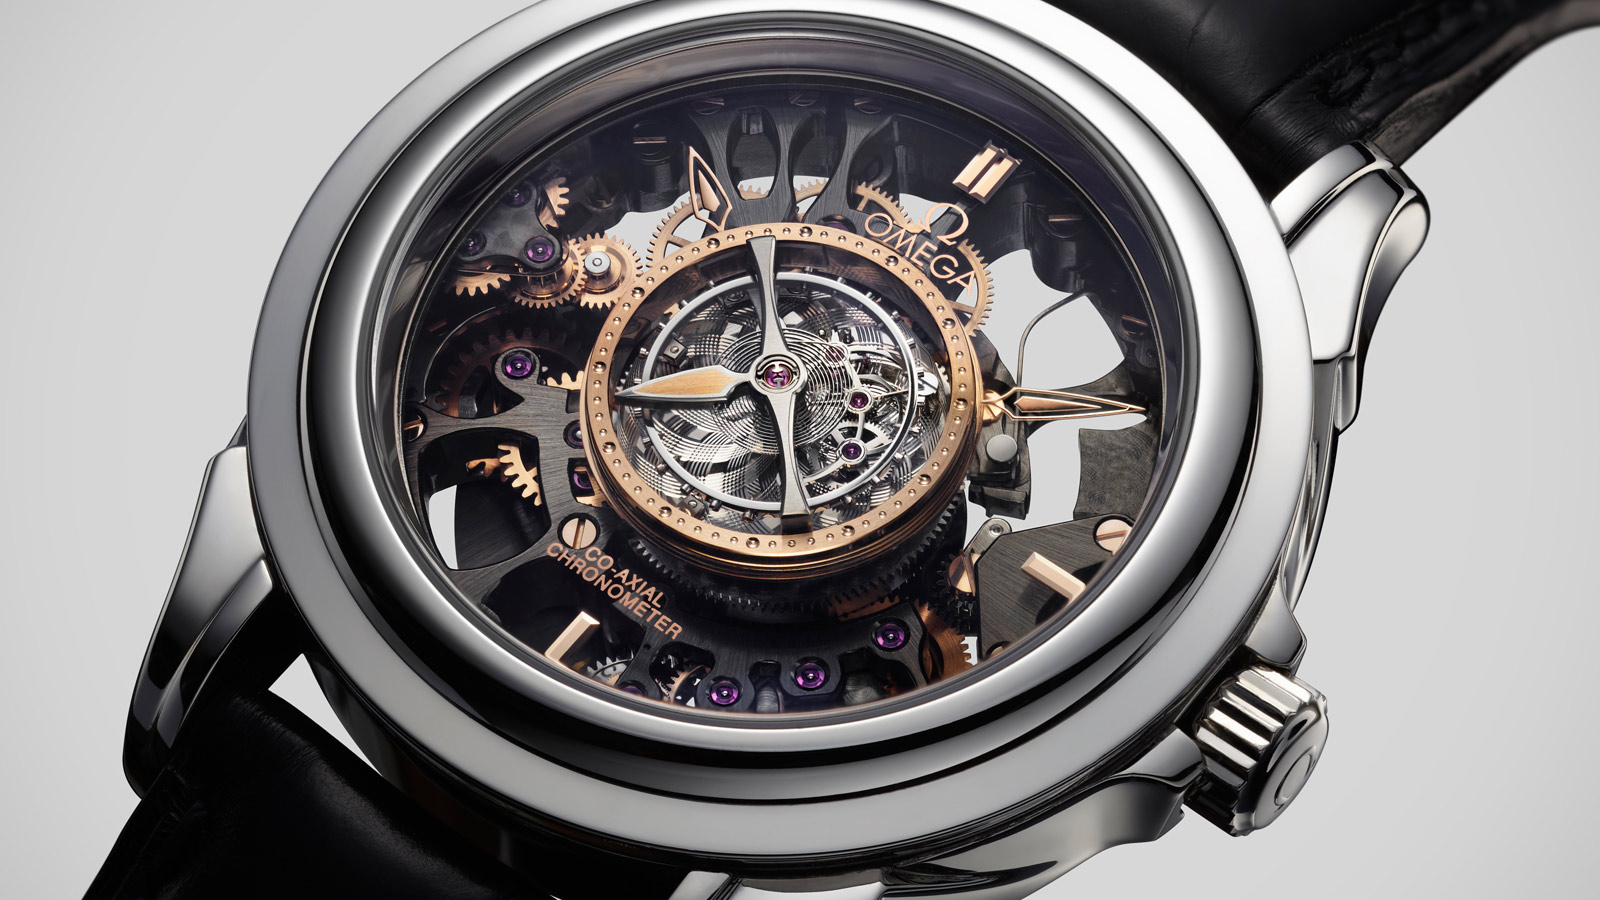 De Ville トゥールビヨン Tourbillon Co‑Axial Limited Edition 38.7 mm - 513.93.39.21.99.001 - ビュー 2